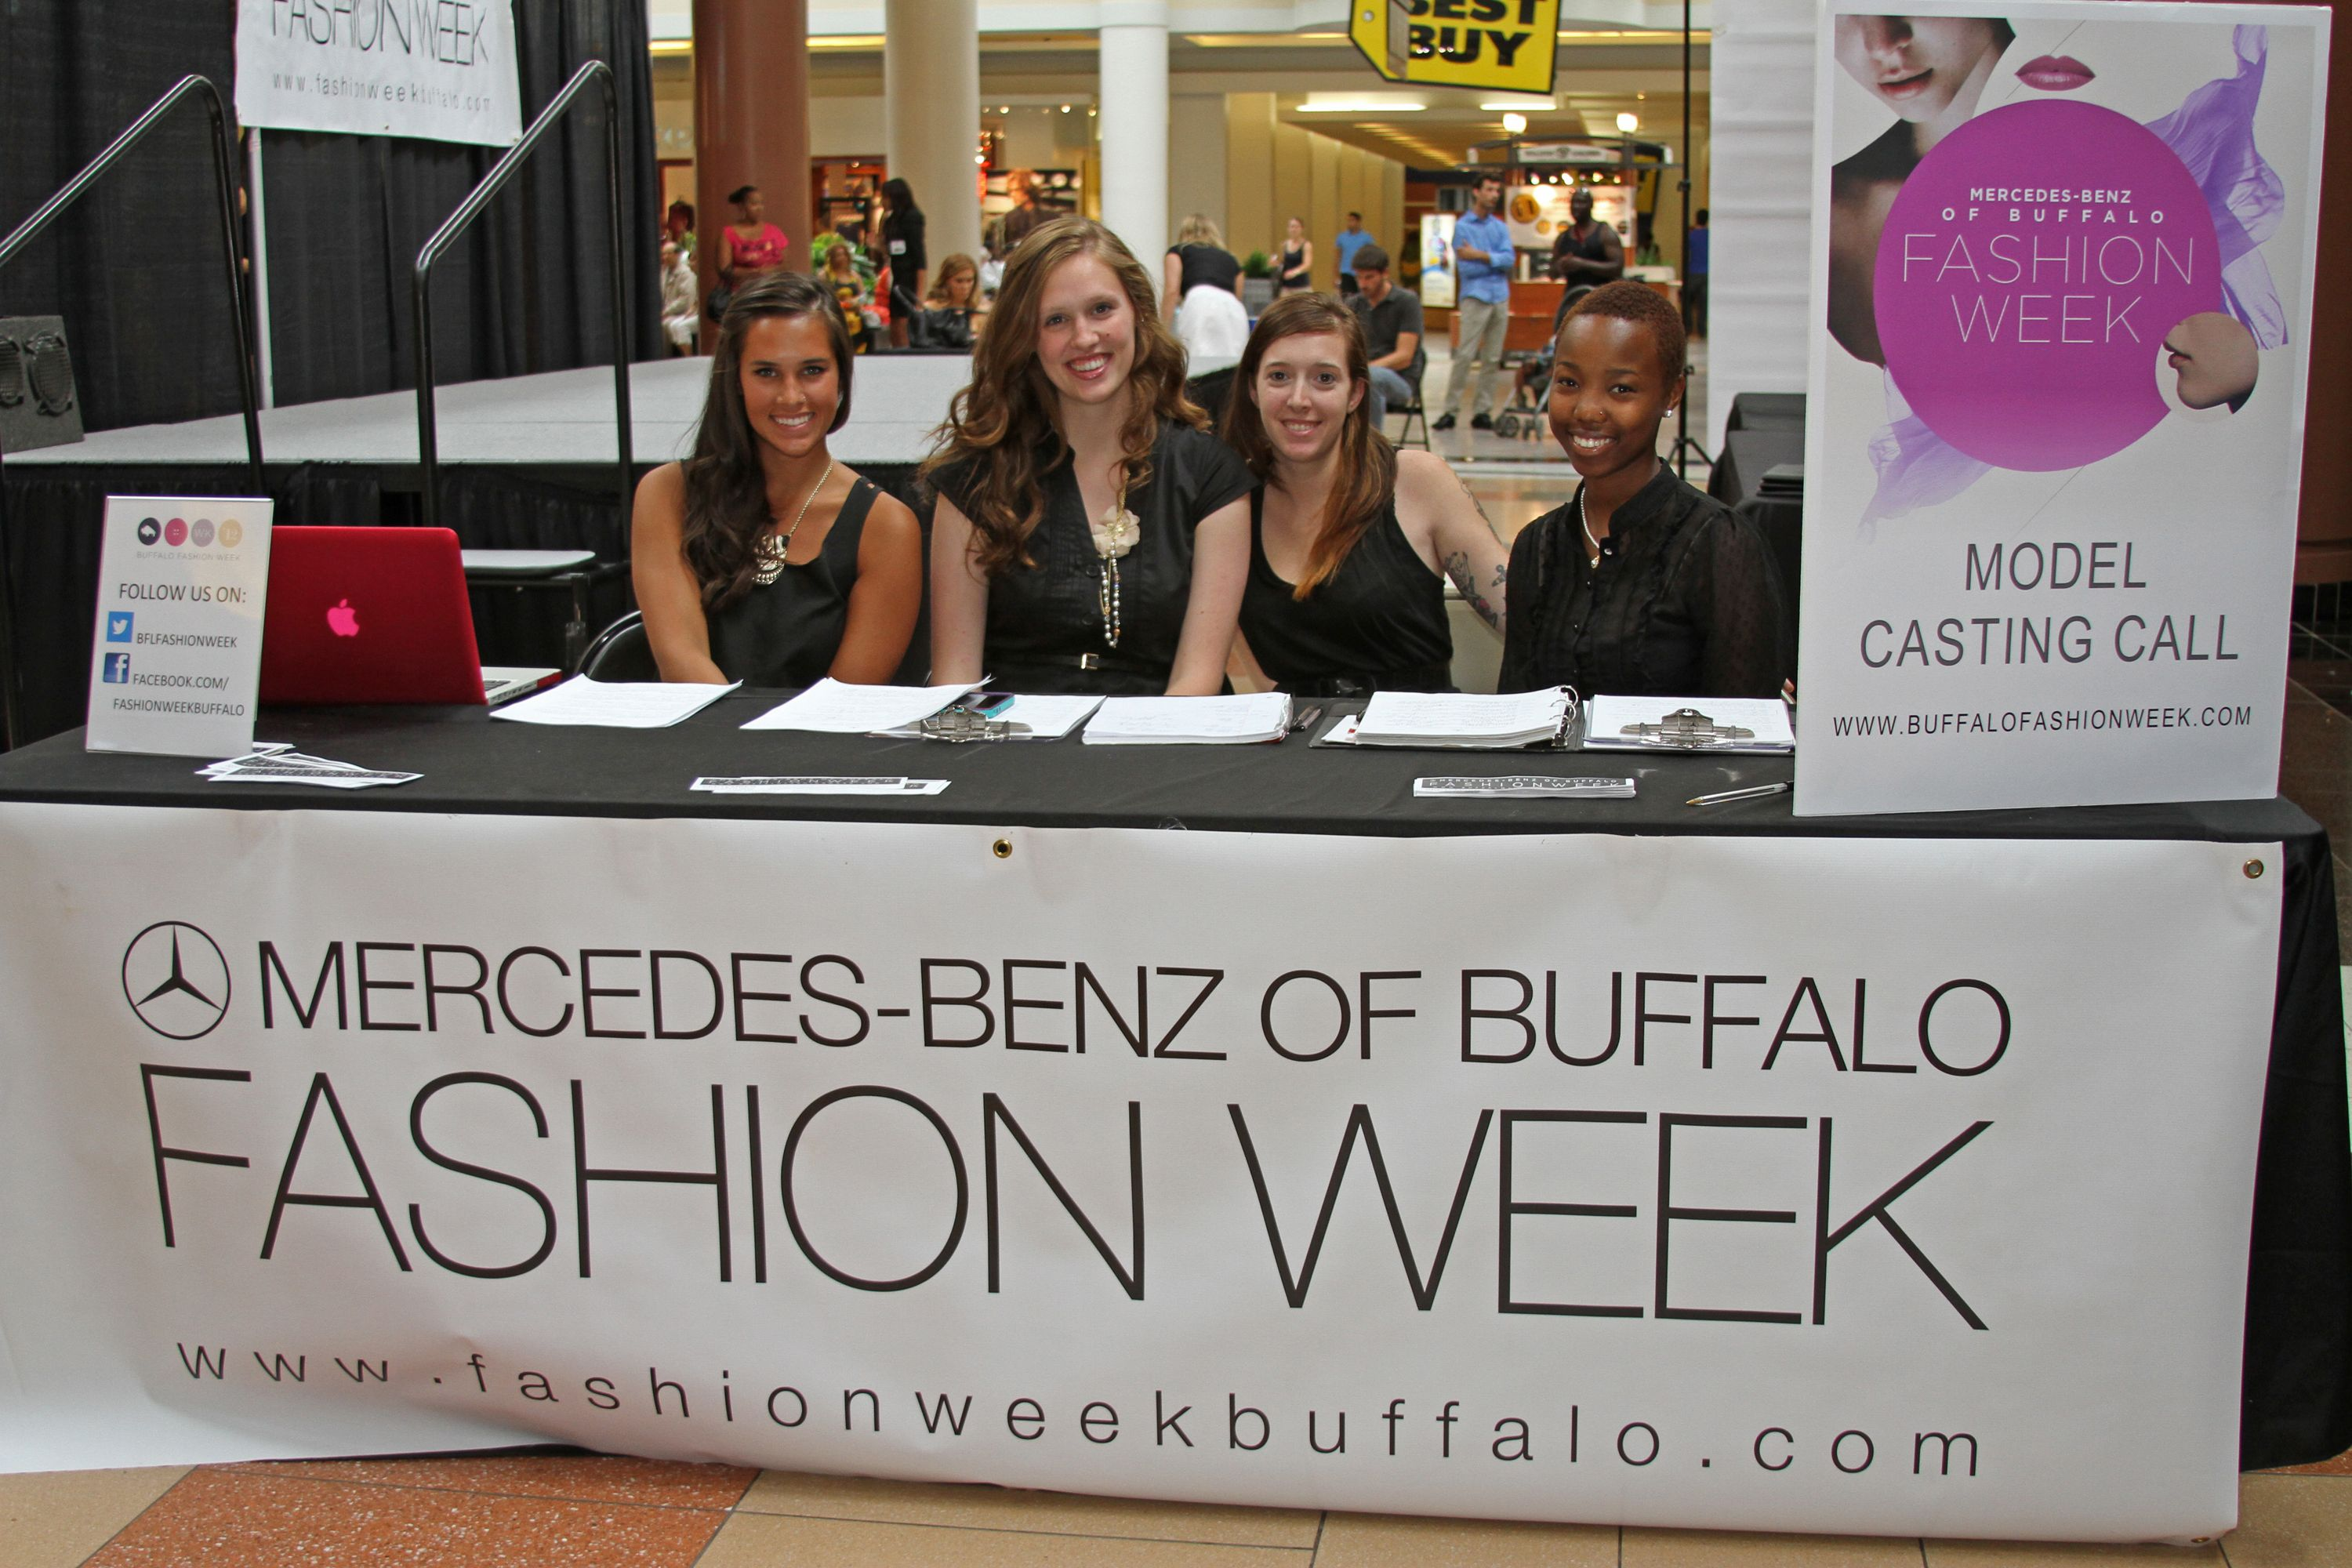 Perfect Bebe At The Mercedes Benz Of Buffalo Fashion Week Show At Galleria Mall  #MBBFW | Buffalo Fashion Week | Pinterest | Galleria Mall, Fashion Weeks  And Bebe